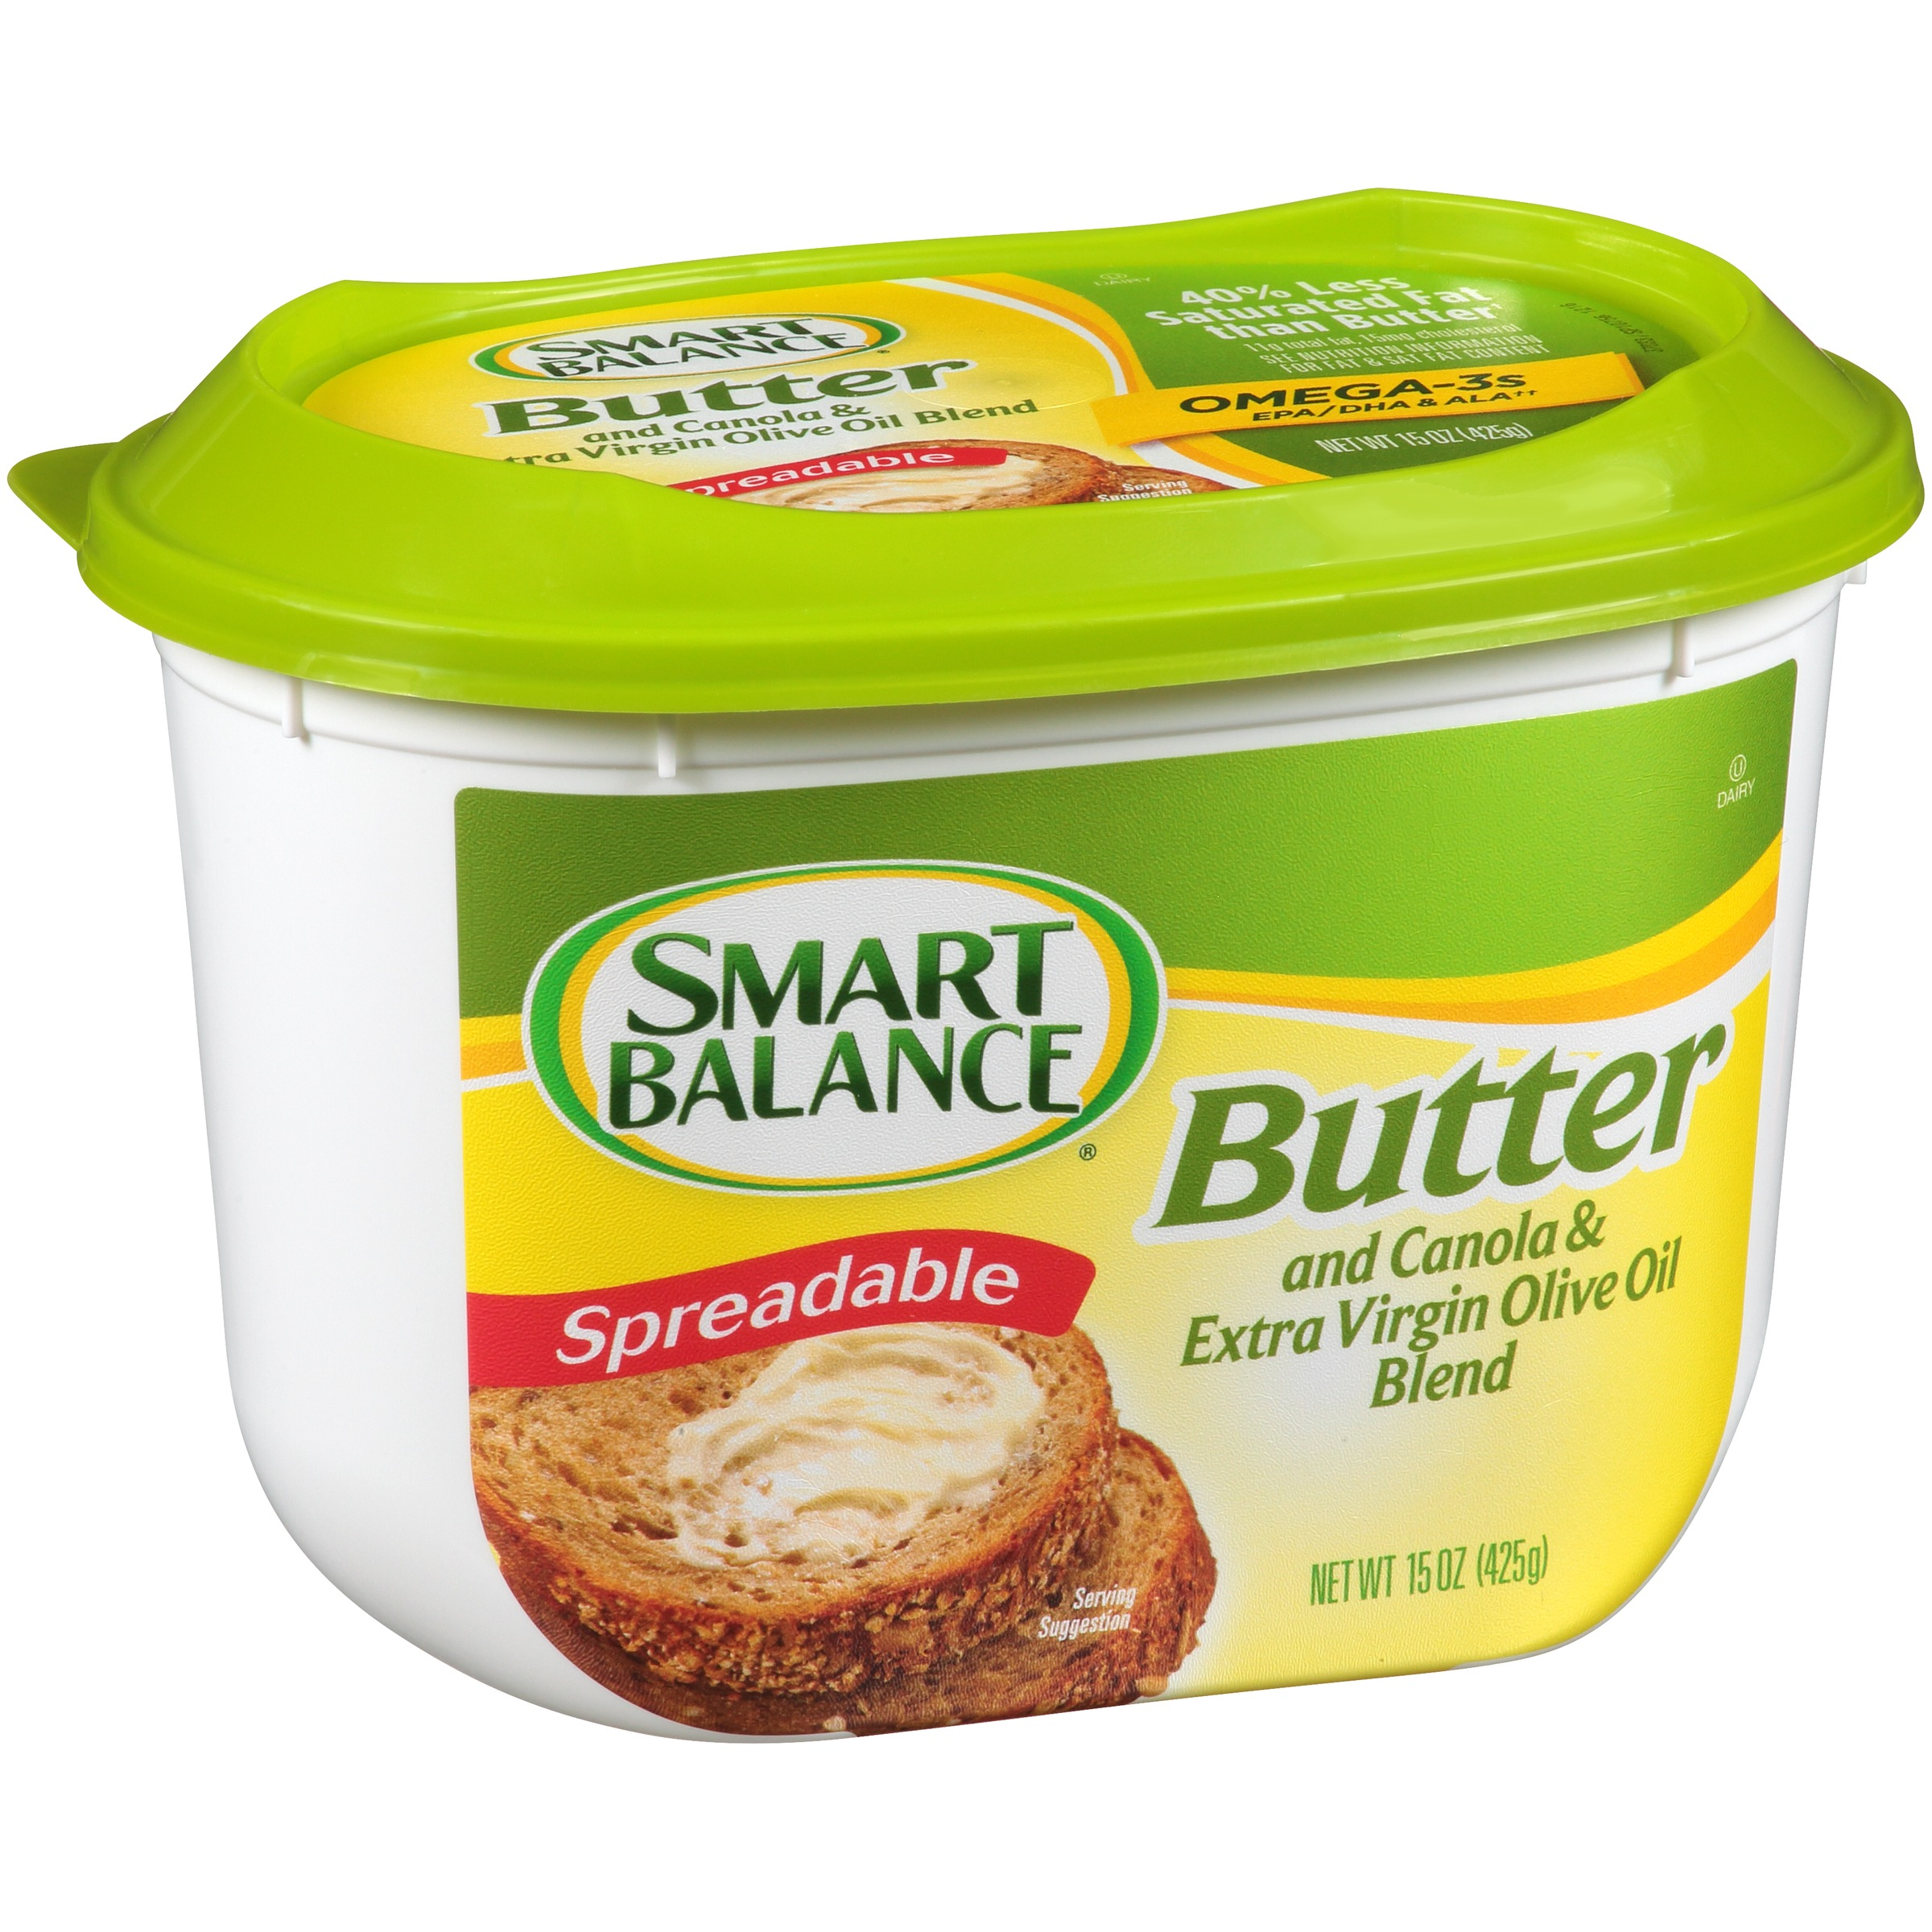 Smart Balance® Spreadable Butter and Canola & Extra Virgin Olive Oil Blend 15 oz. Tub